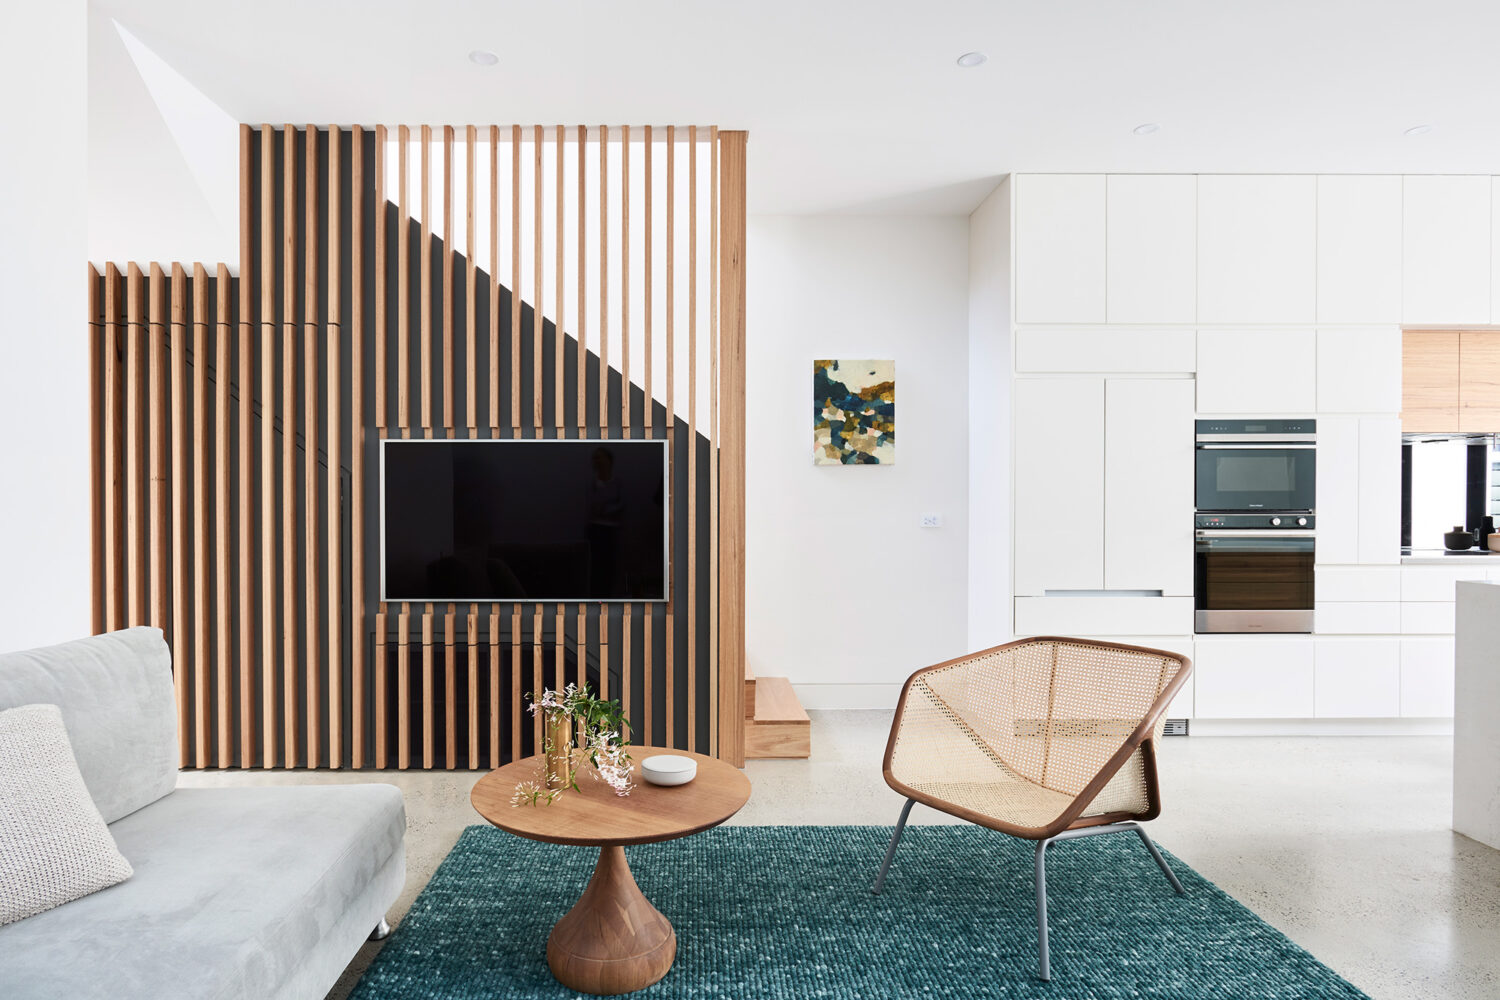 Maike Design lounge room with timber batten wall balustrade